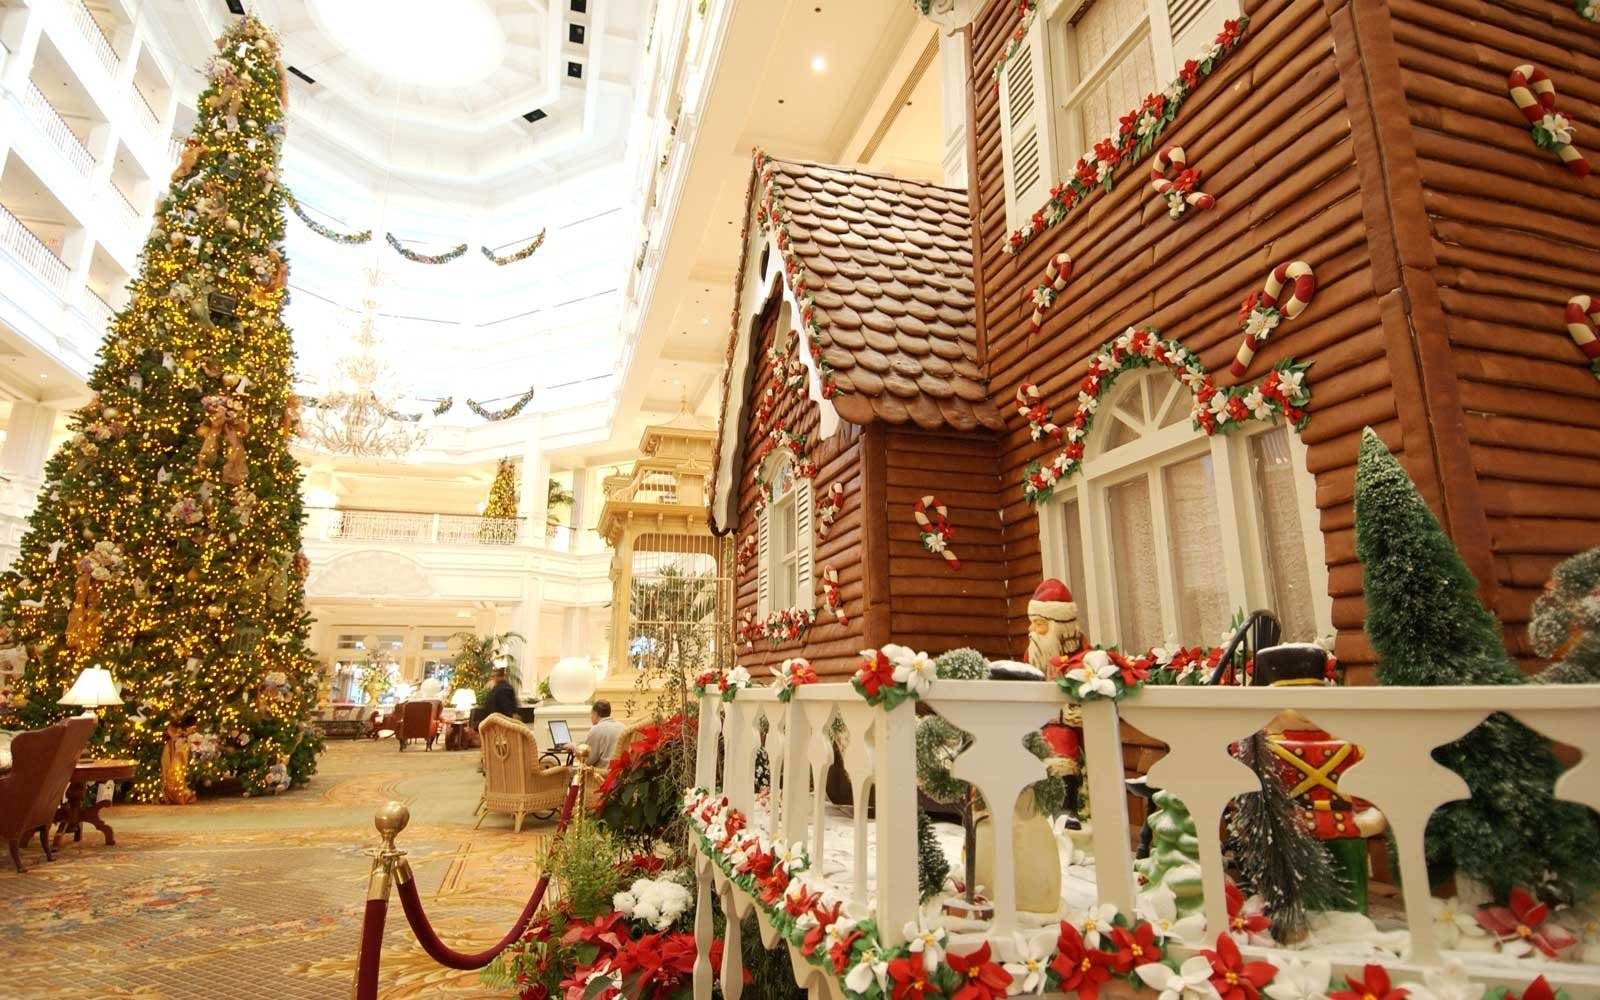 Top 10 Gingerbread House Displays From Around The World